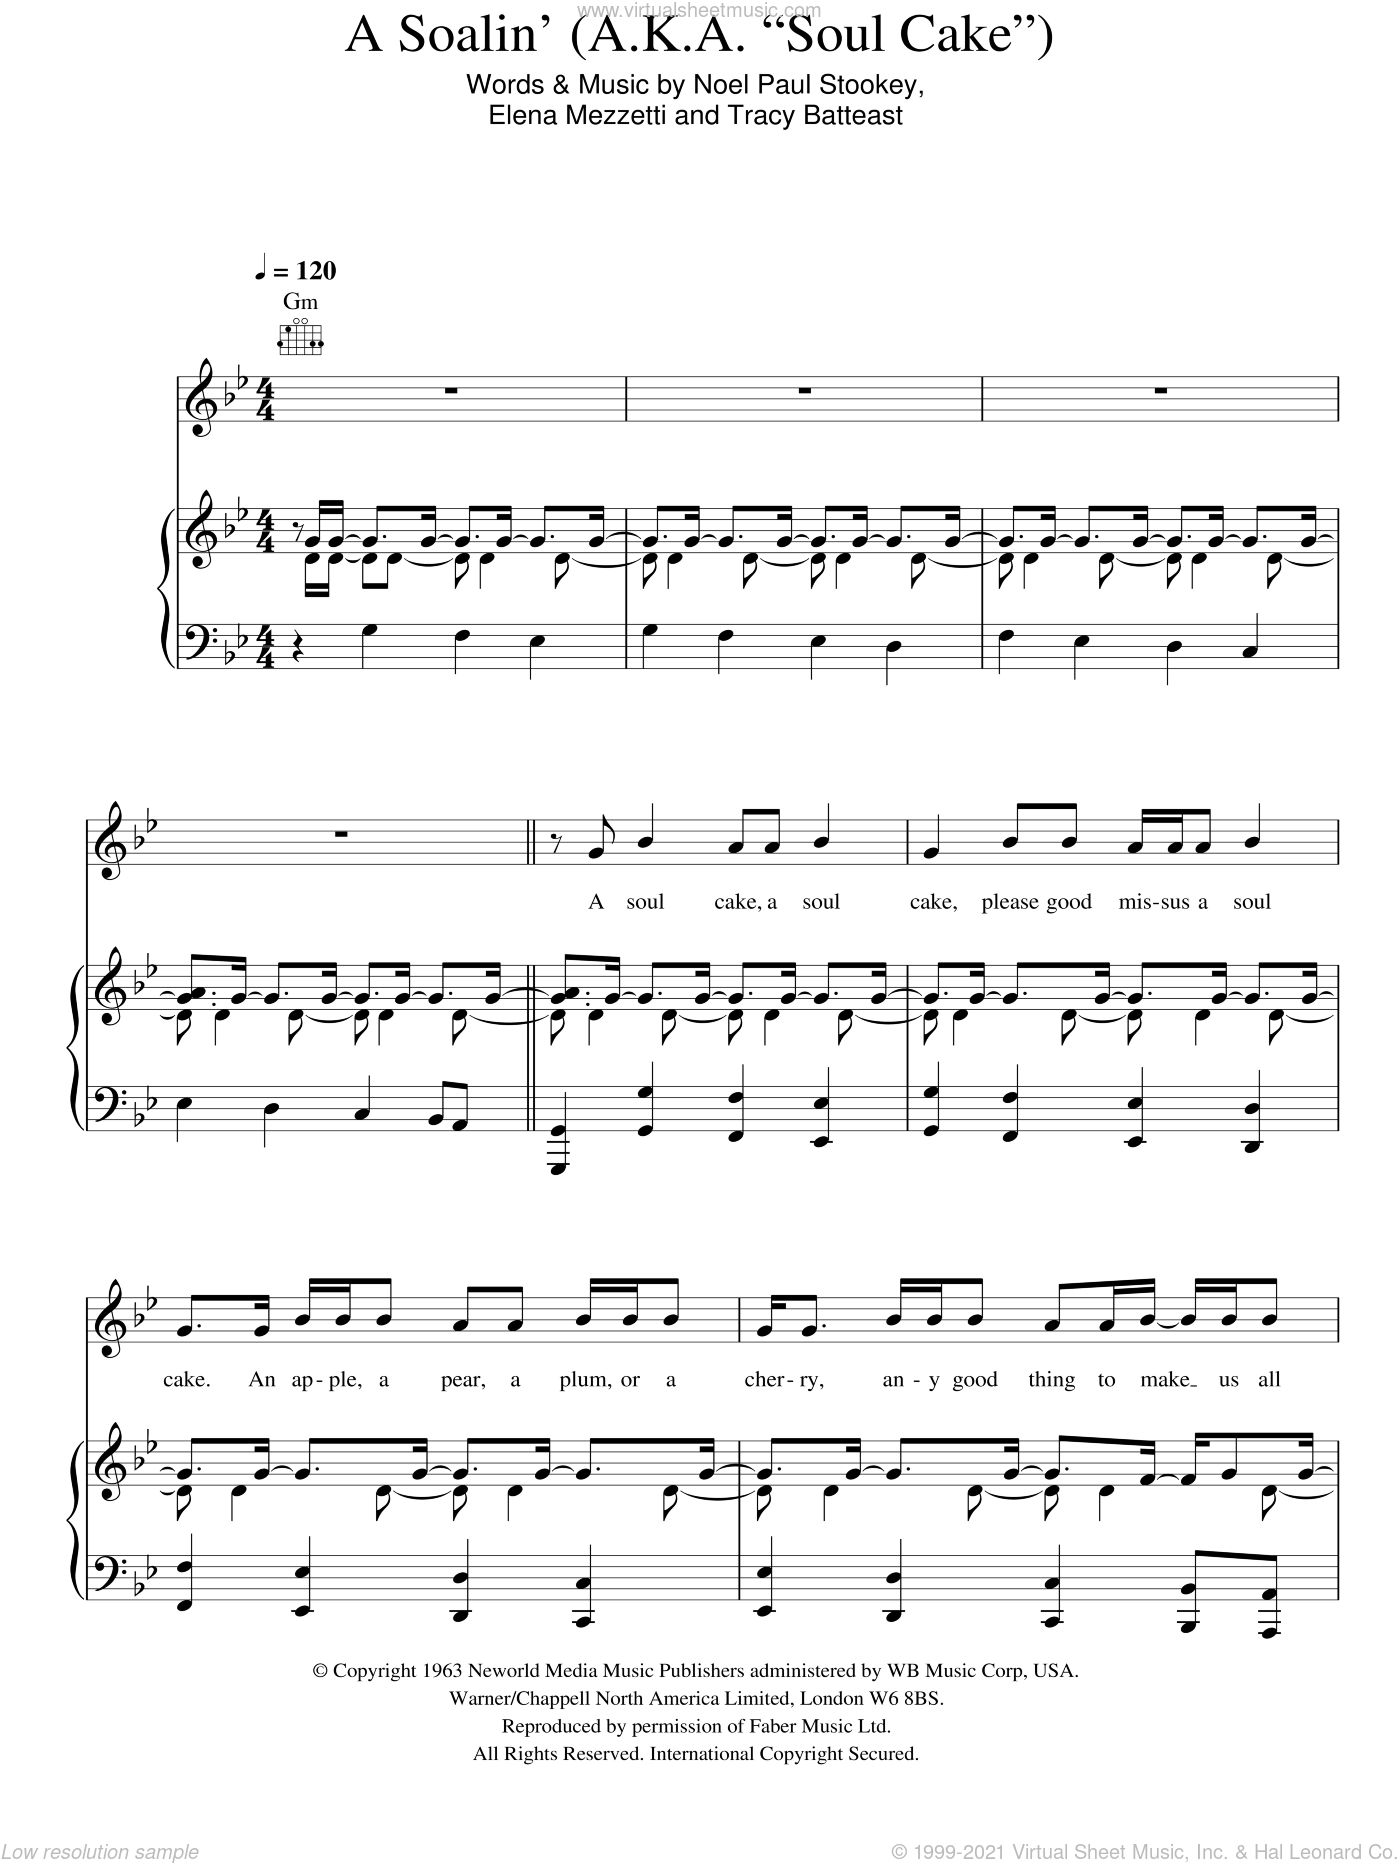 A Soalin' (A.K.A. 'Soul Cake') sheet music for voice, piano or guitar by Sting, Elena Mezzetti, Noel Stookey and Tracy Batteast, intermediate skill level